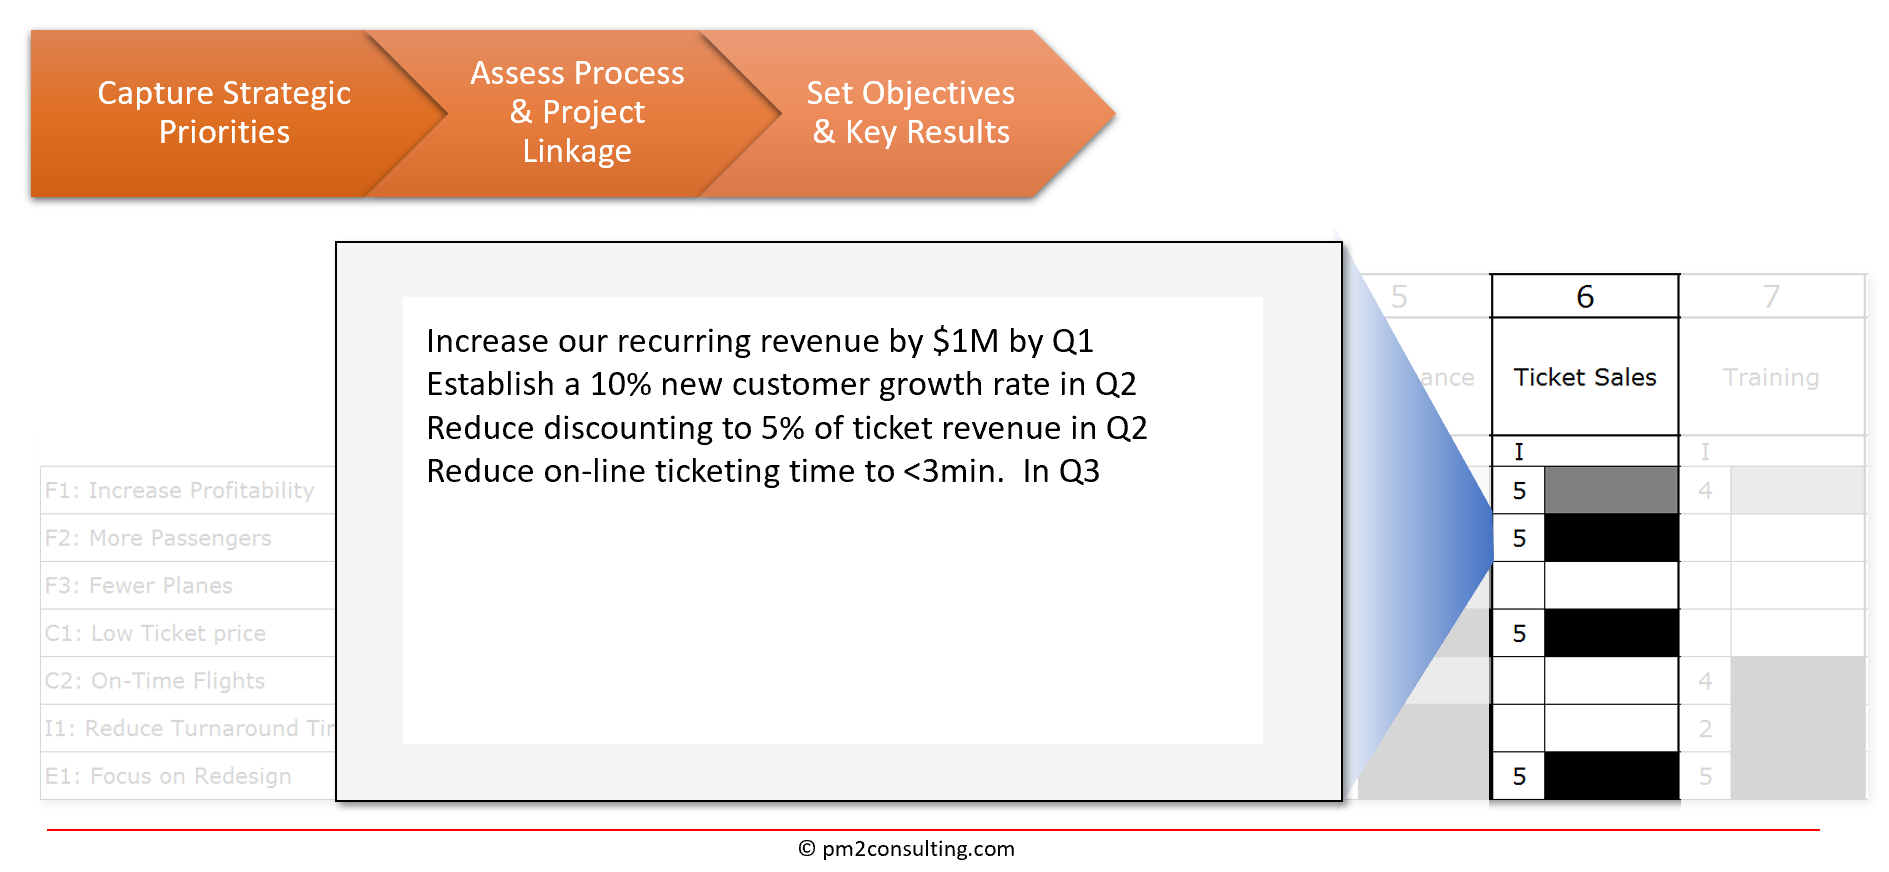 Step 3 - Set Objectives and Key Results